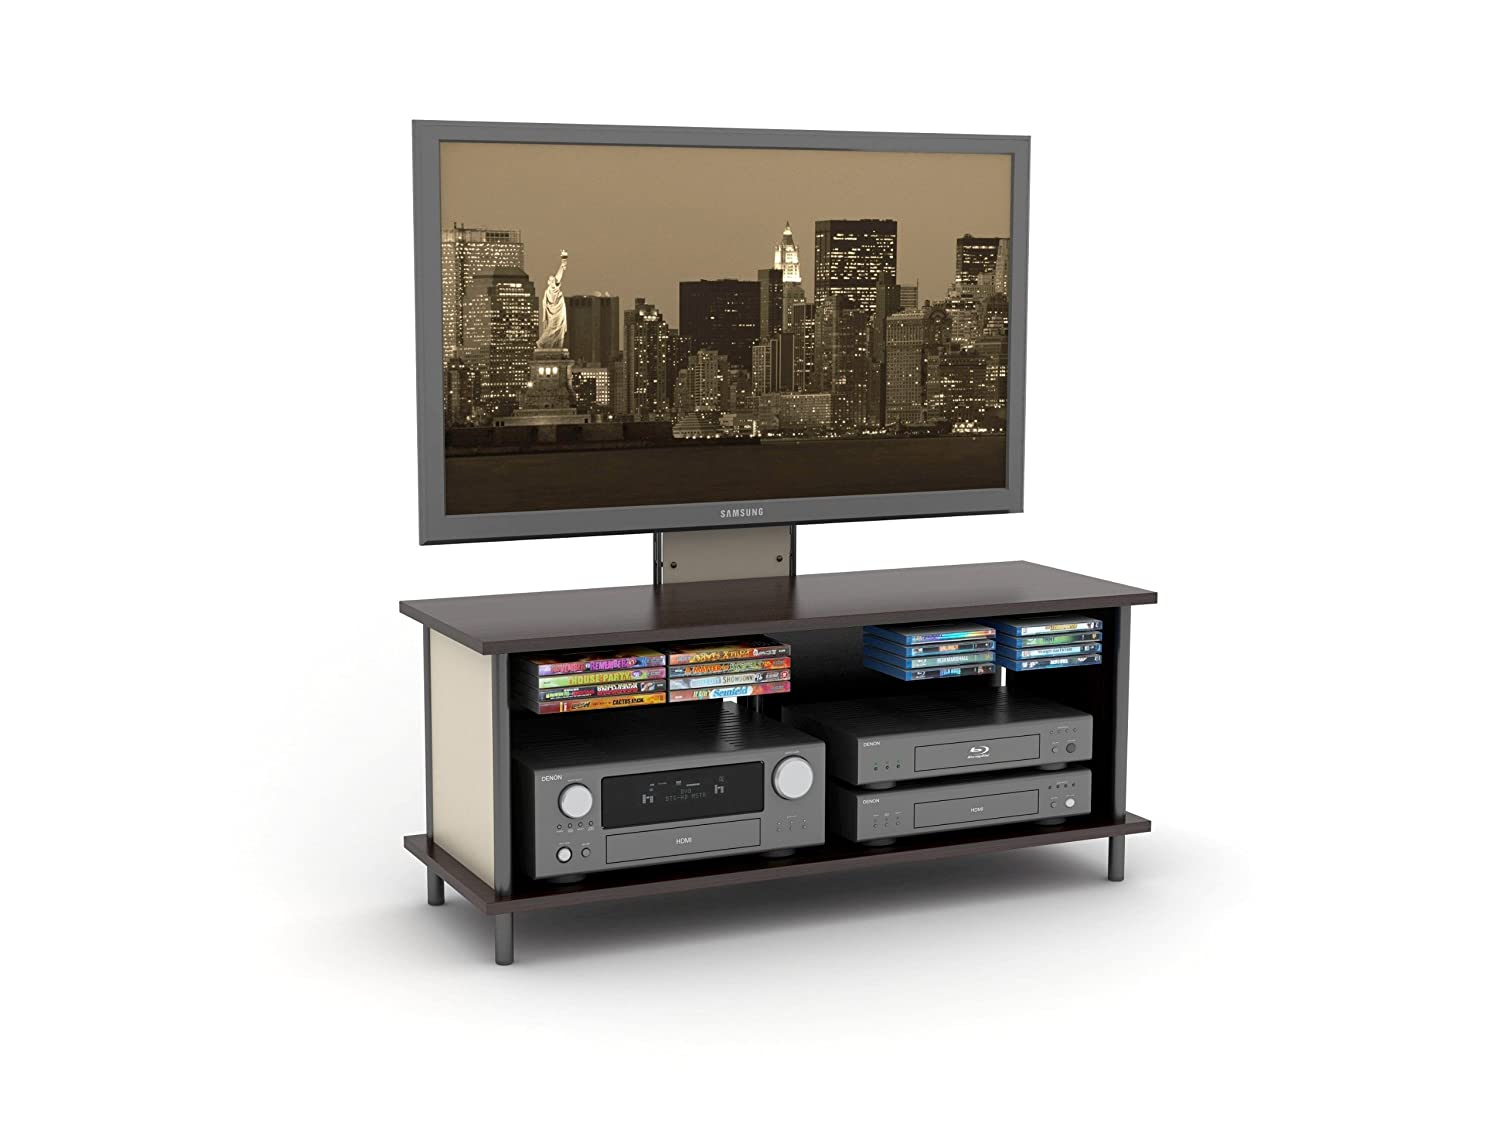 Top 10 Best Tv Stands With Mount For 60 Inch Screens 2018